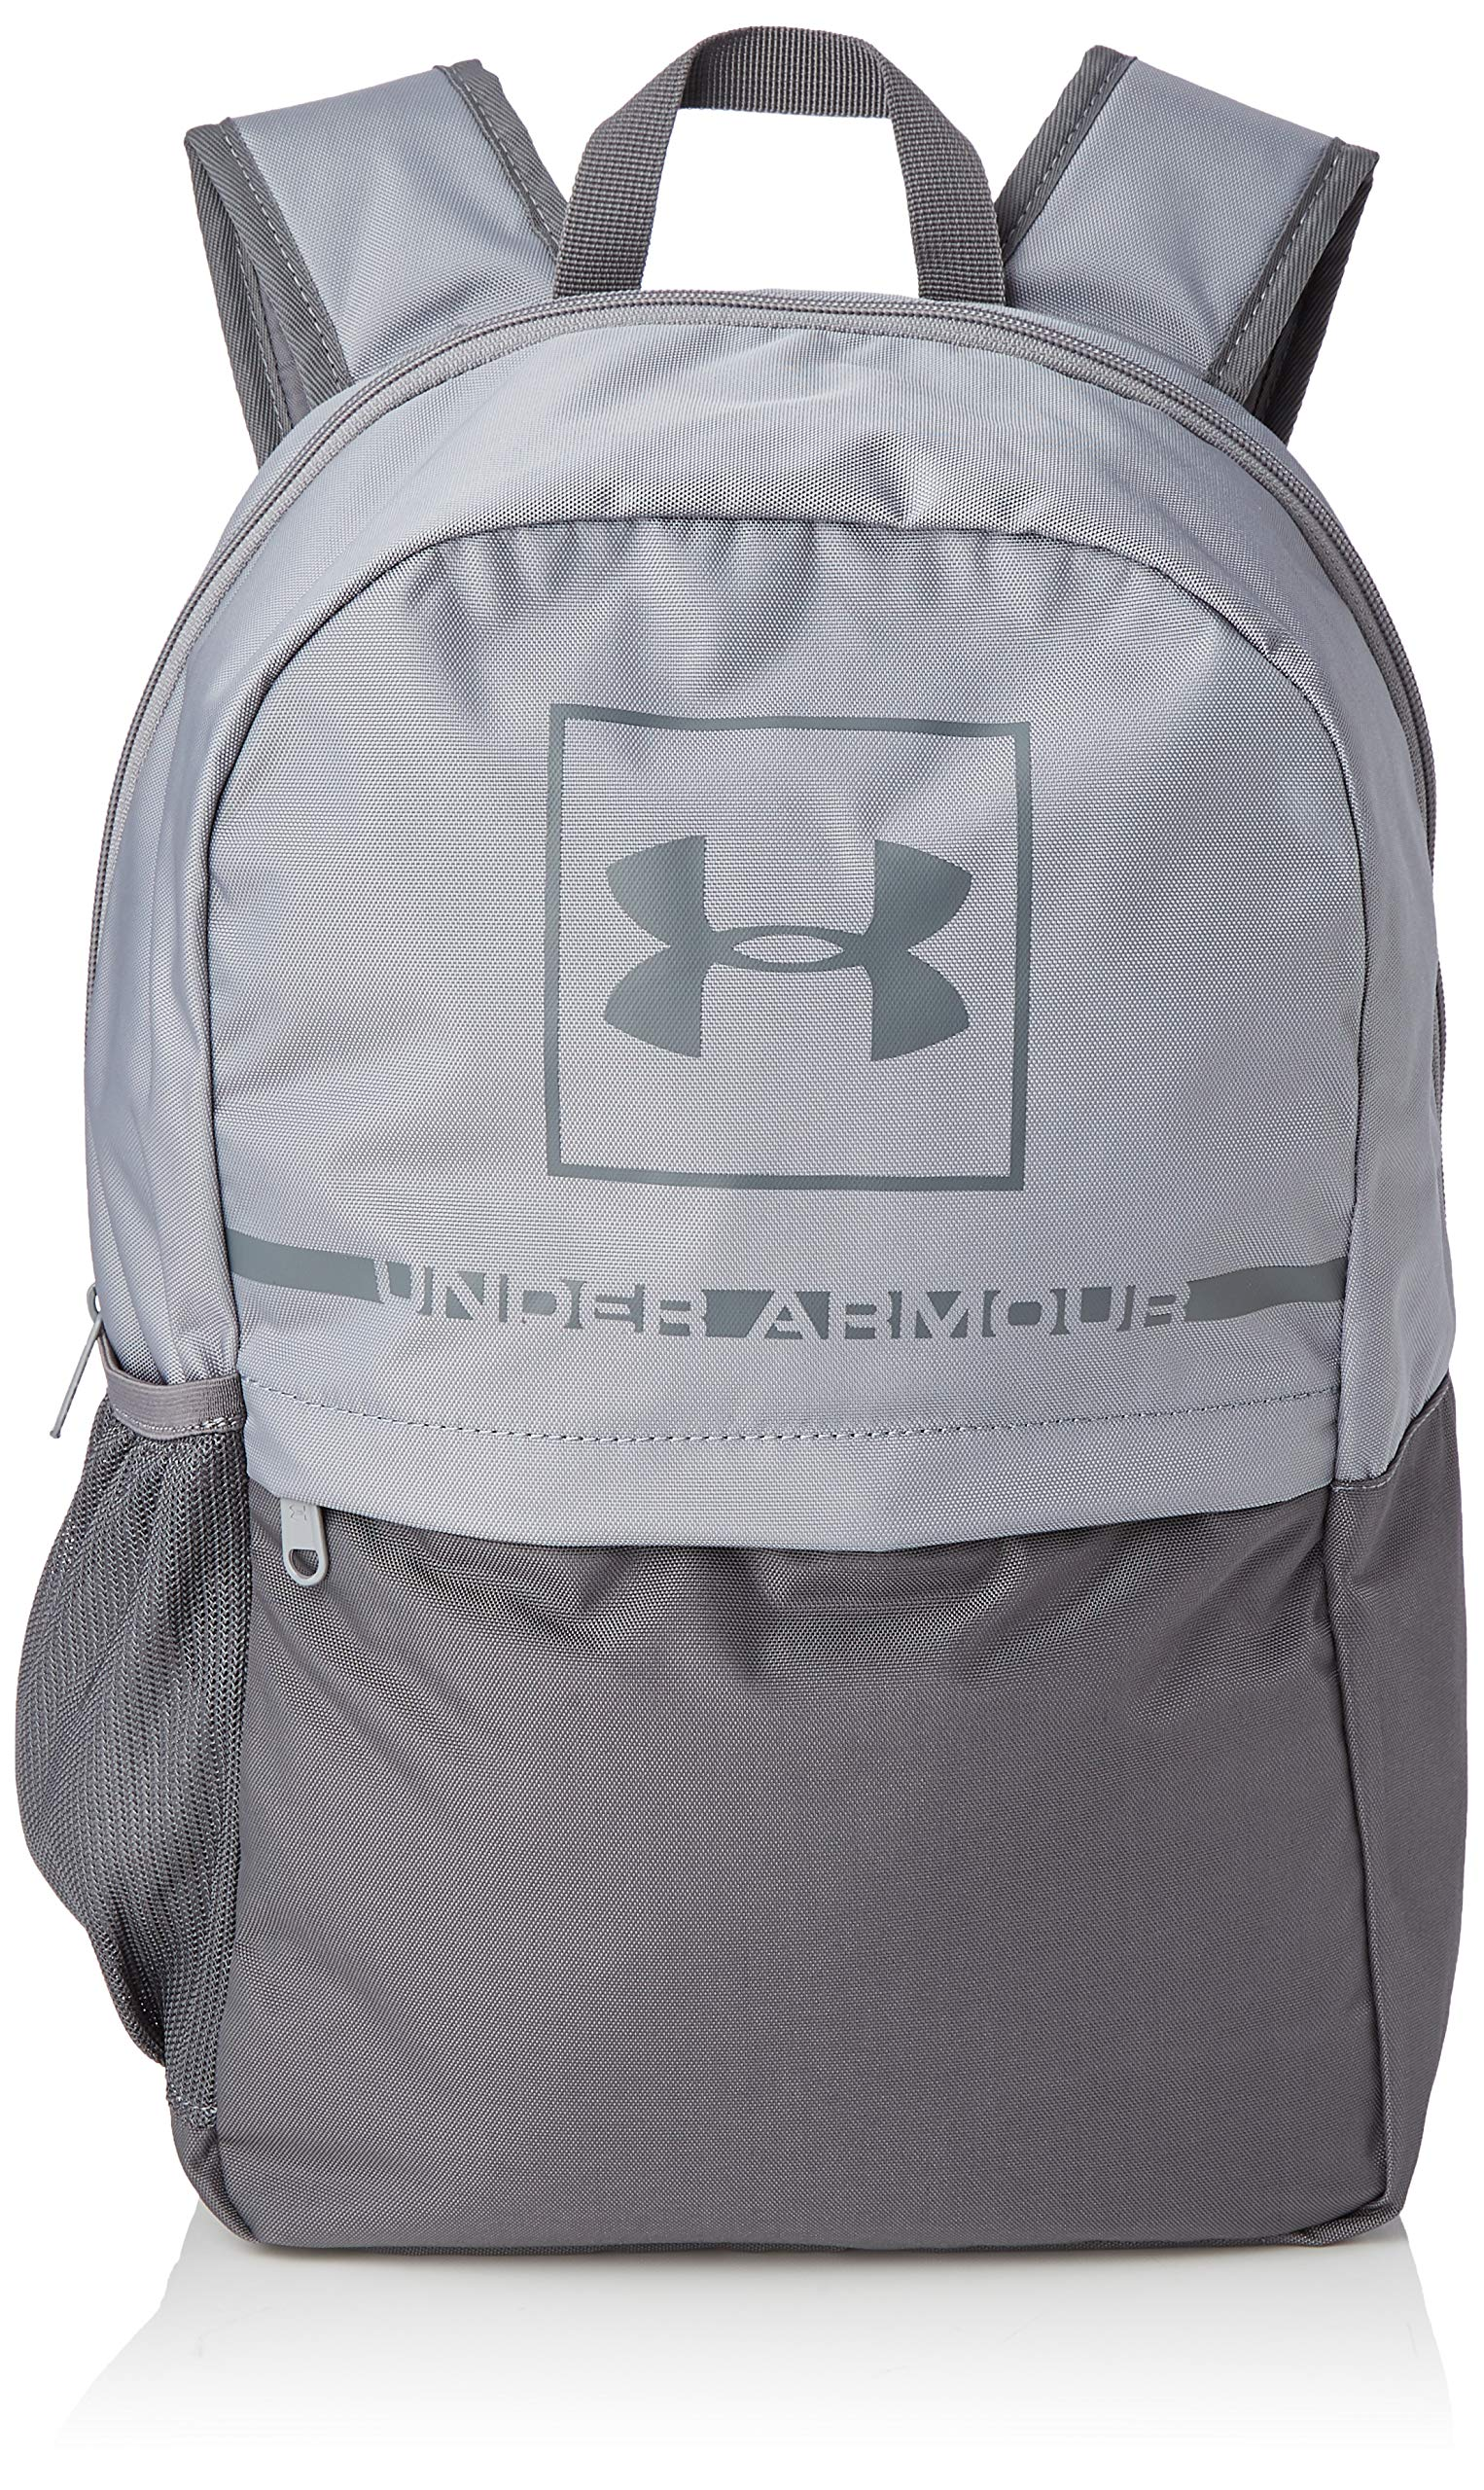 Under Armour Project 5 Backpack Rucksack Sports Bag Grey by Under Armour